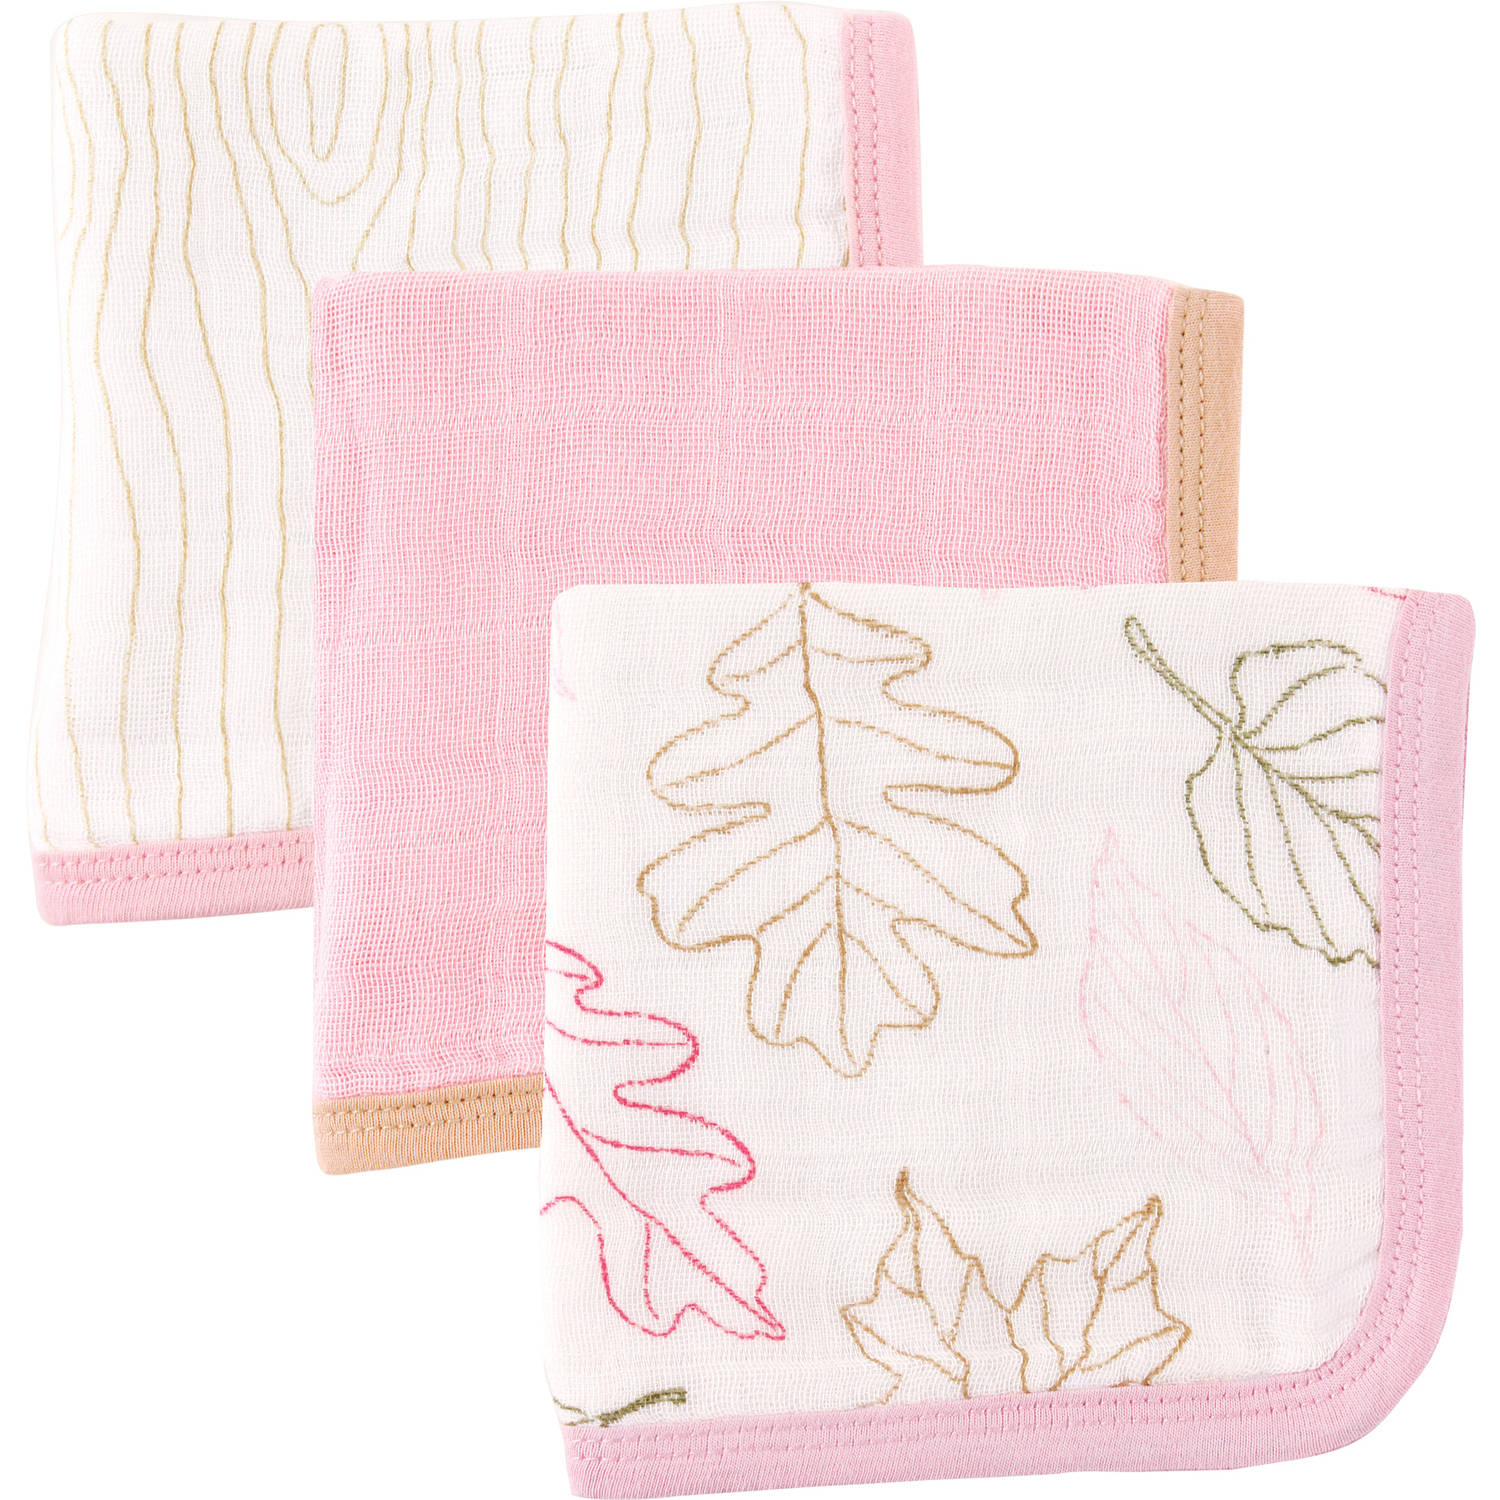 Touched by Nature Organic Muslin Washcloth, 3pk, Leaves Girl